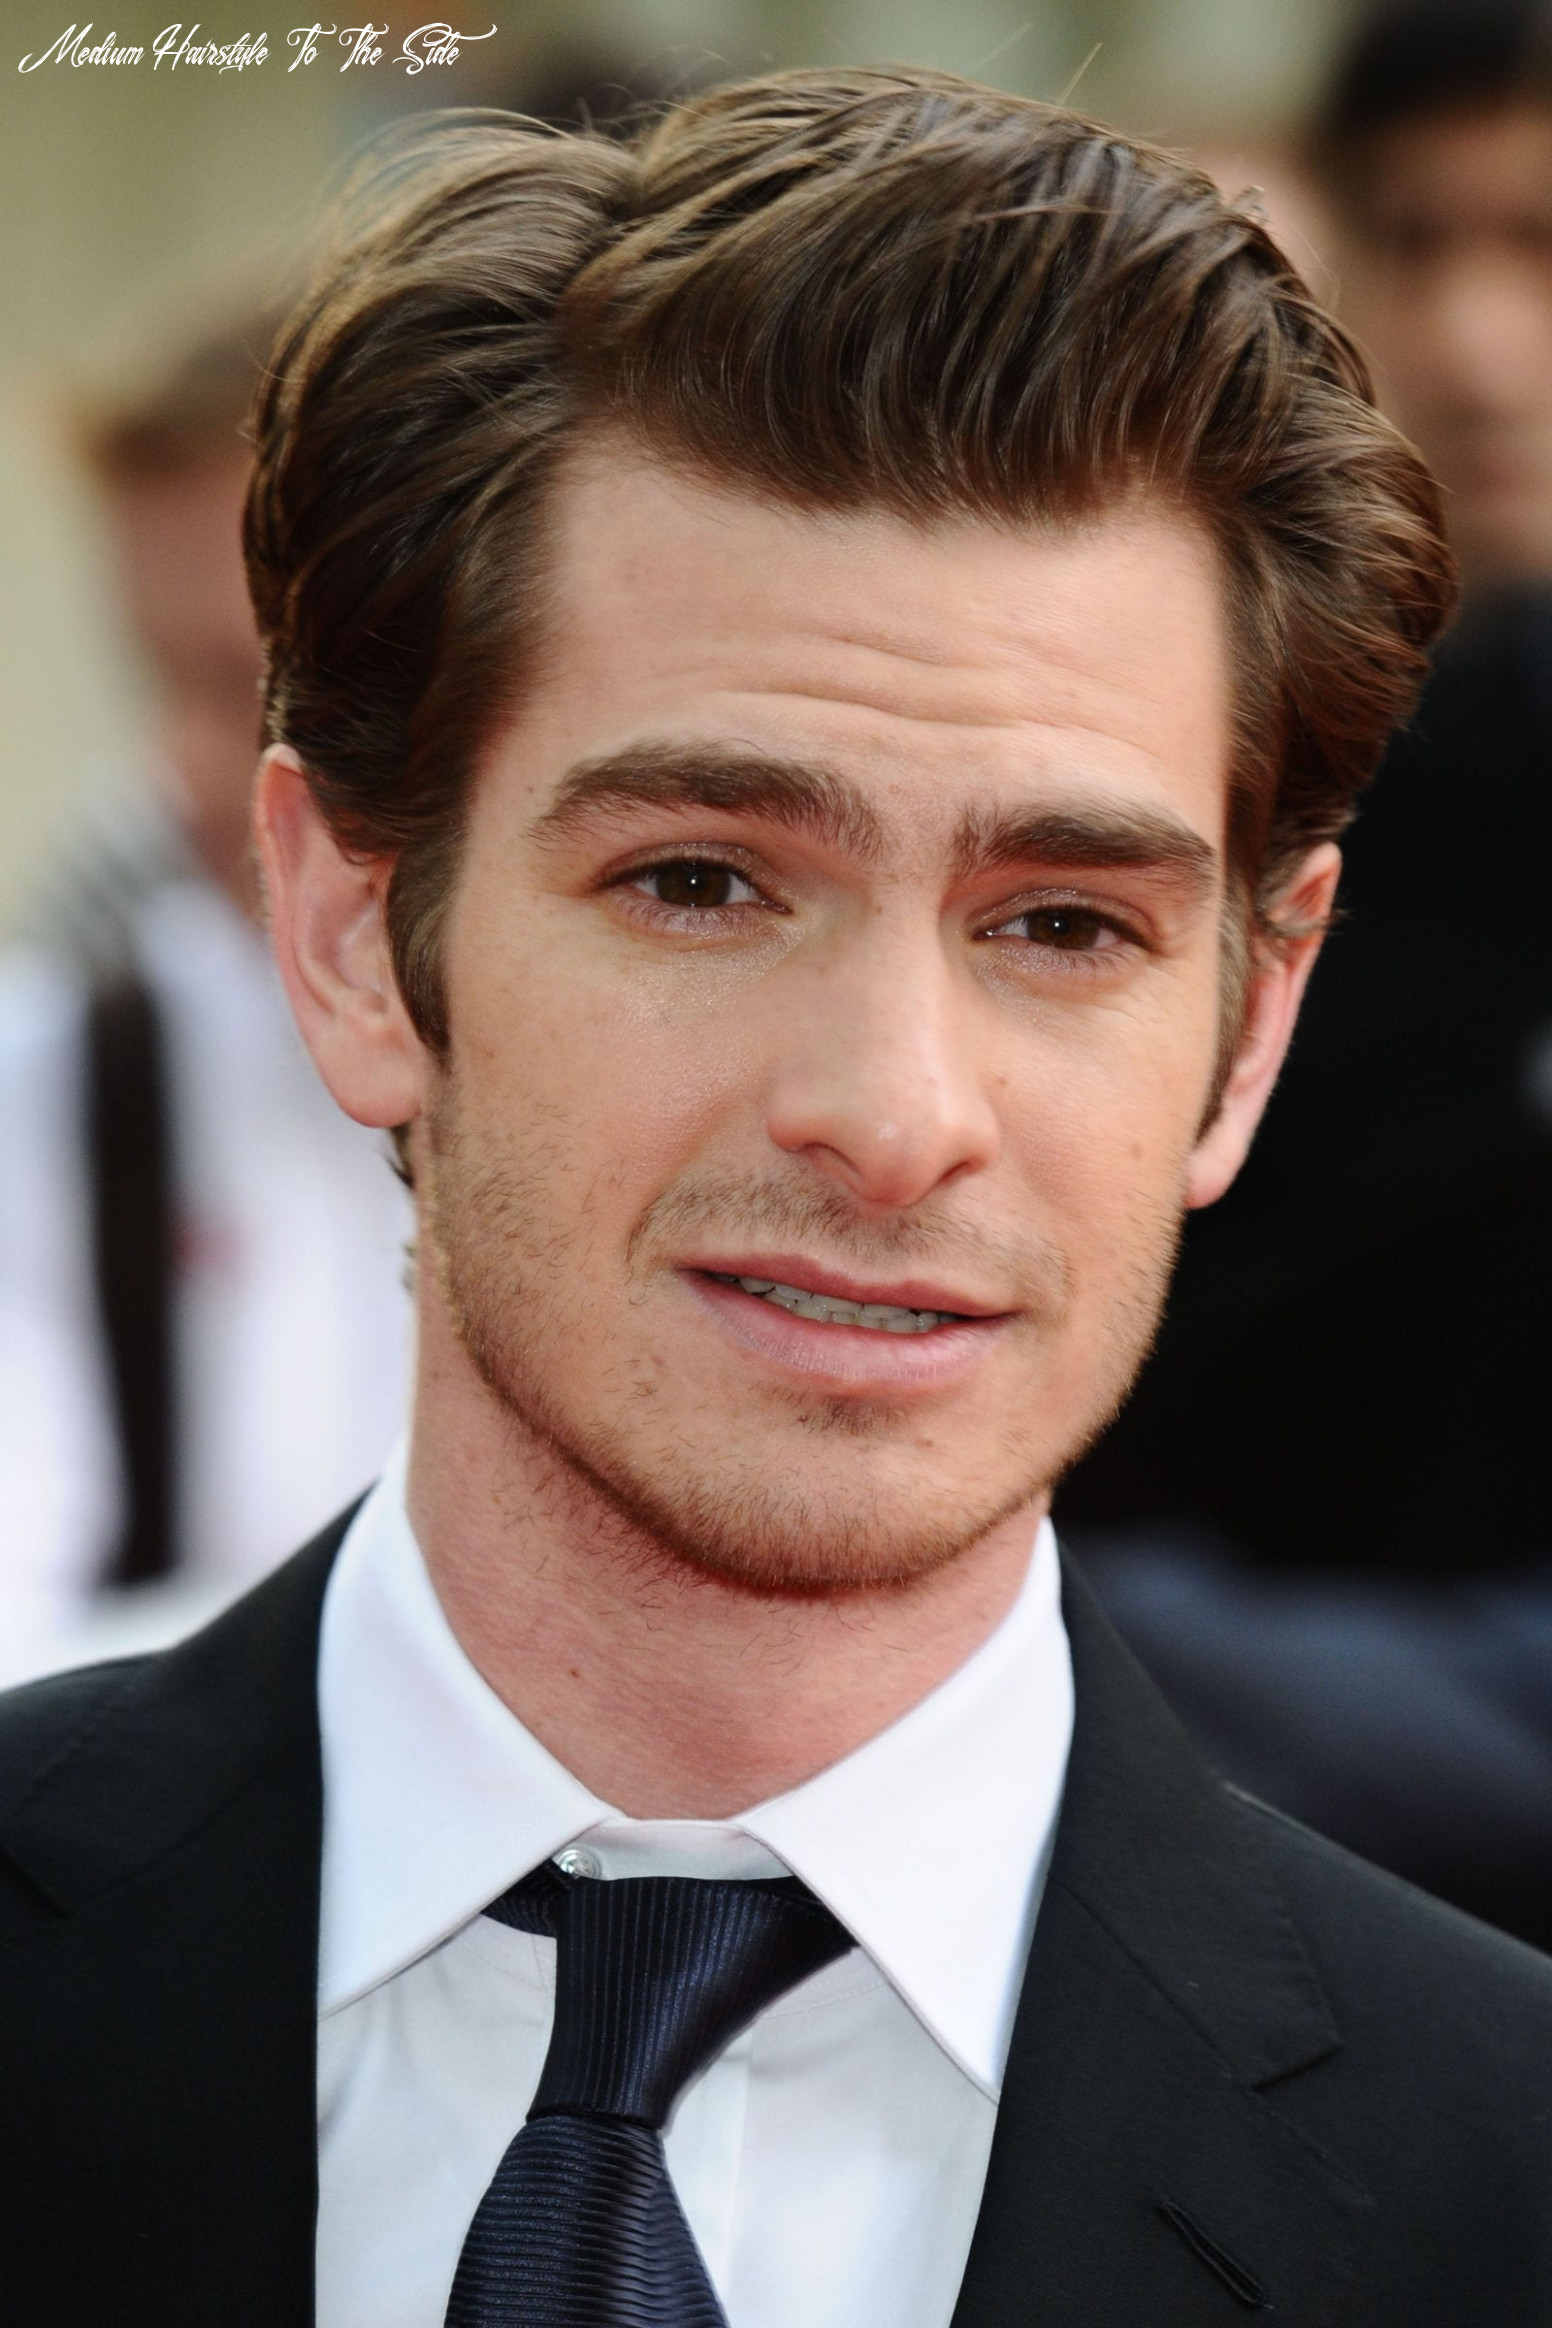 12 side part haircuts: a classic style for gentlemen medium hairstyle to the side